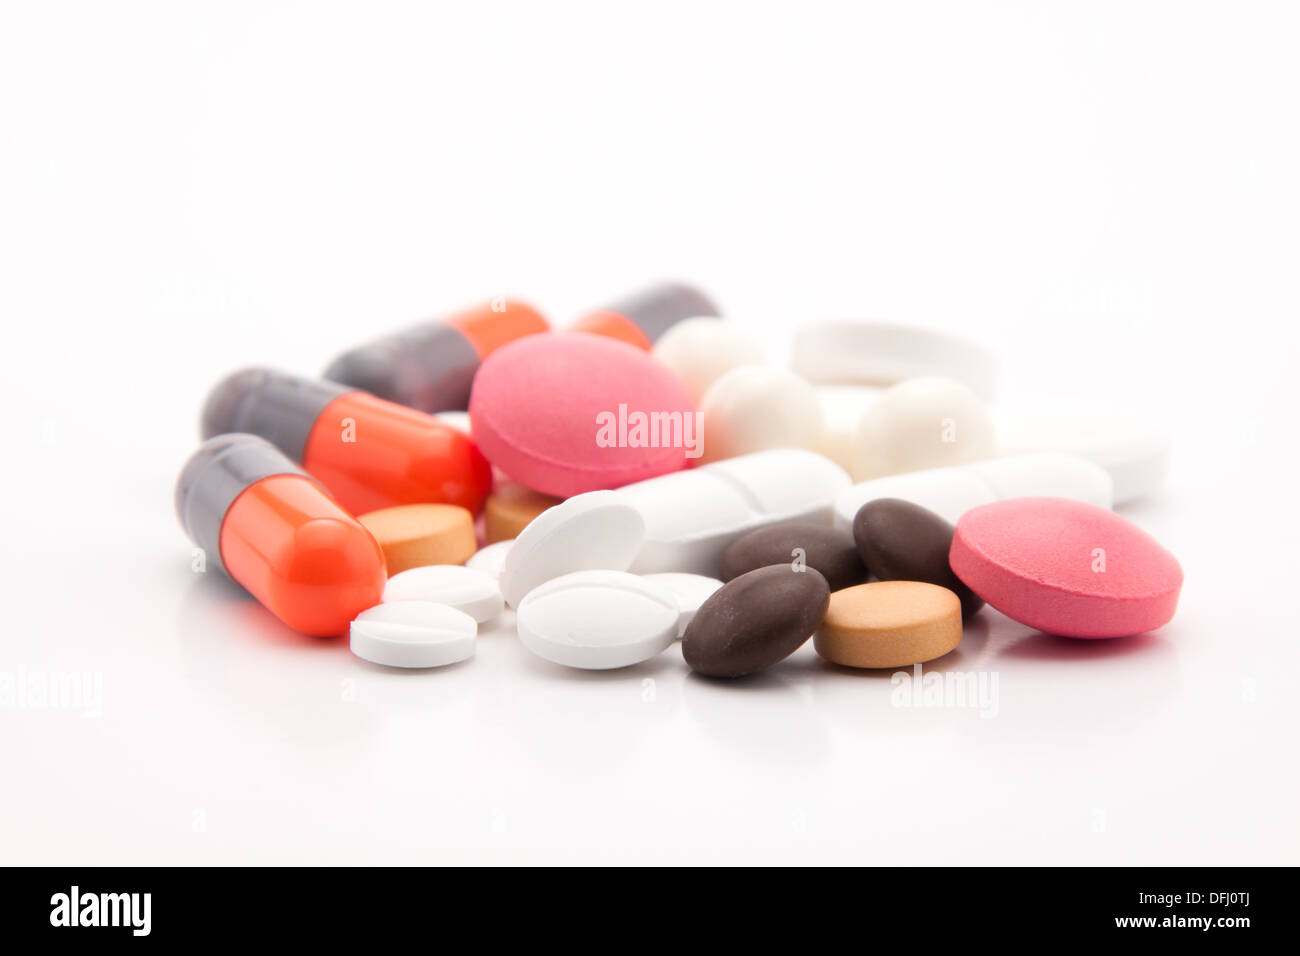 Colorful pills on white background - Stock Image